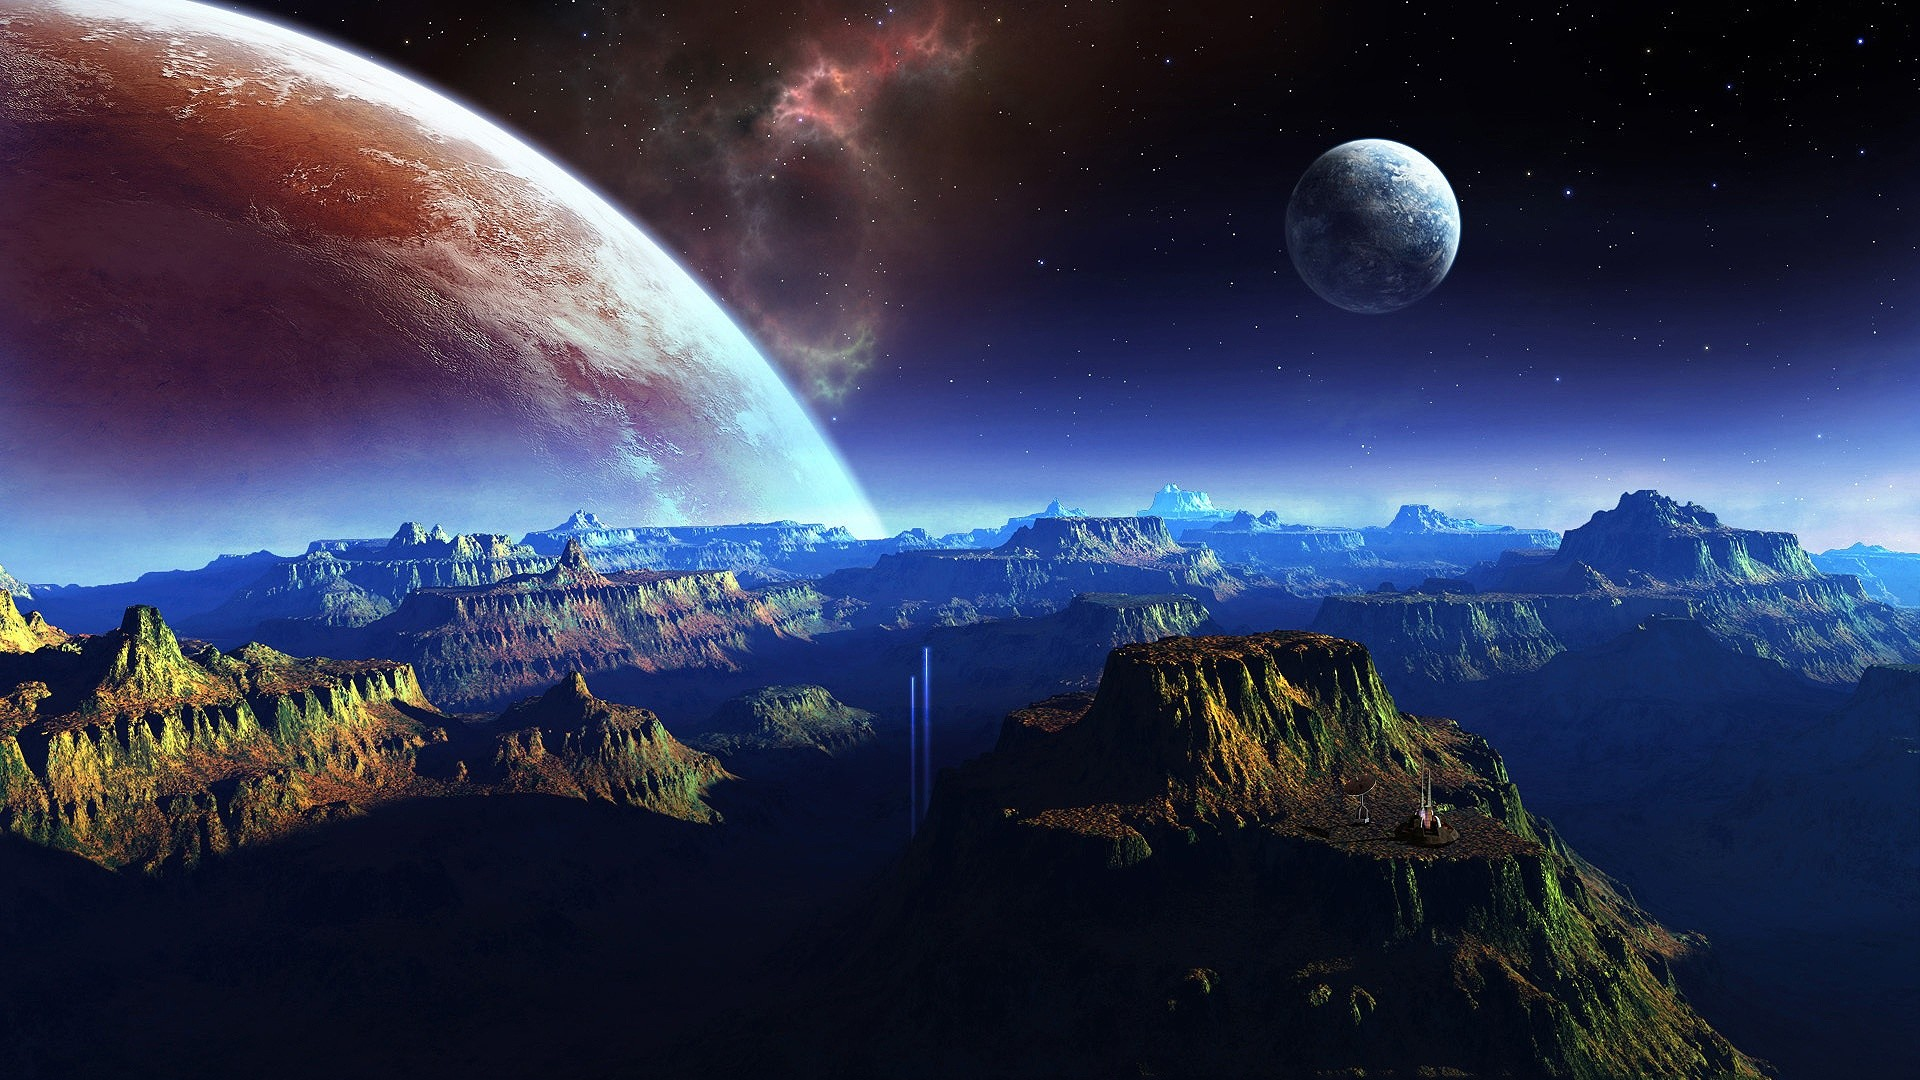 Space Universe Wallpaper Hd 1920x1080 Images Gallery